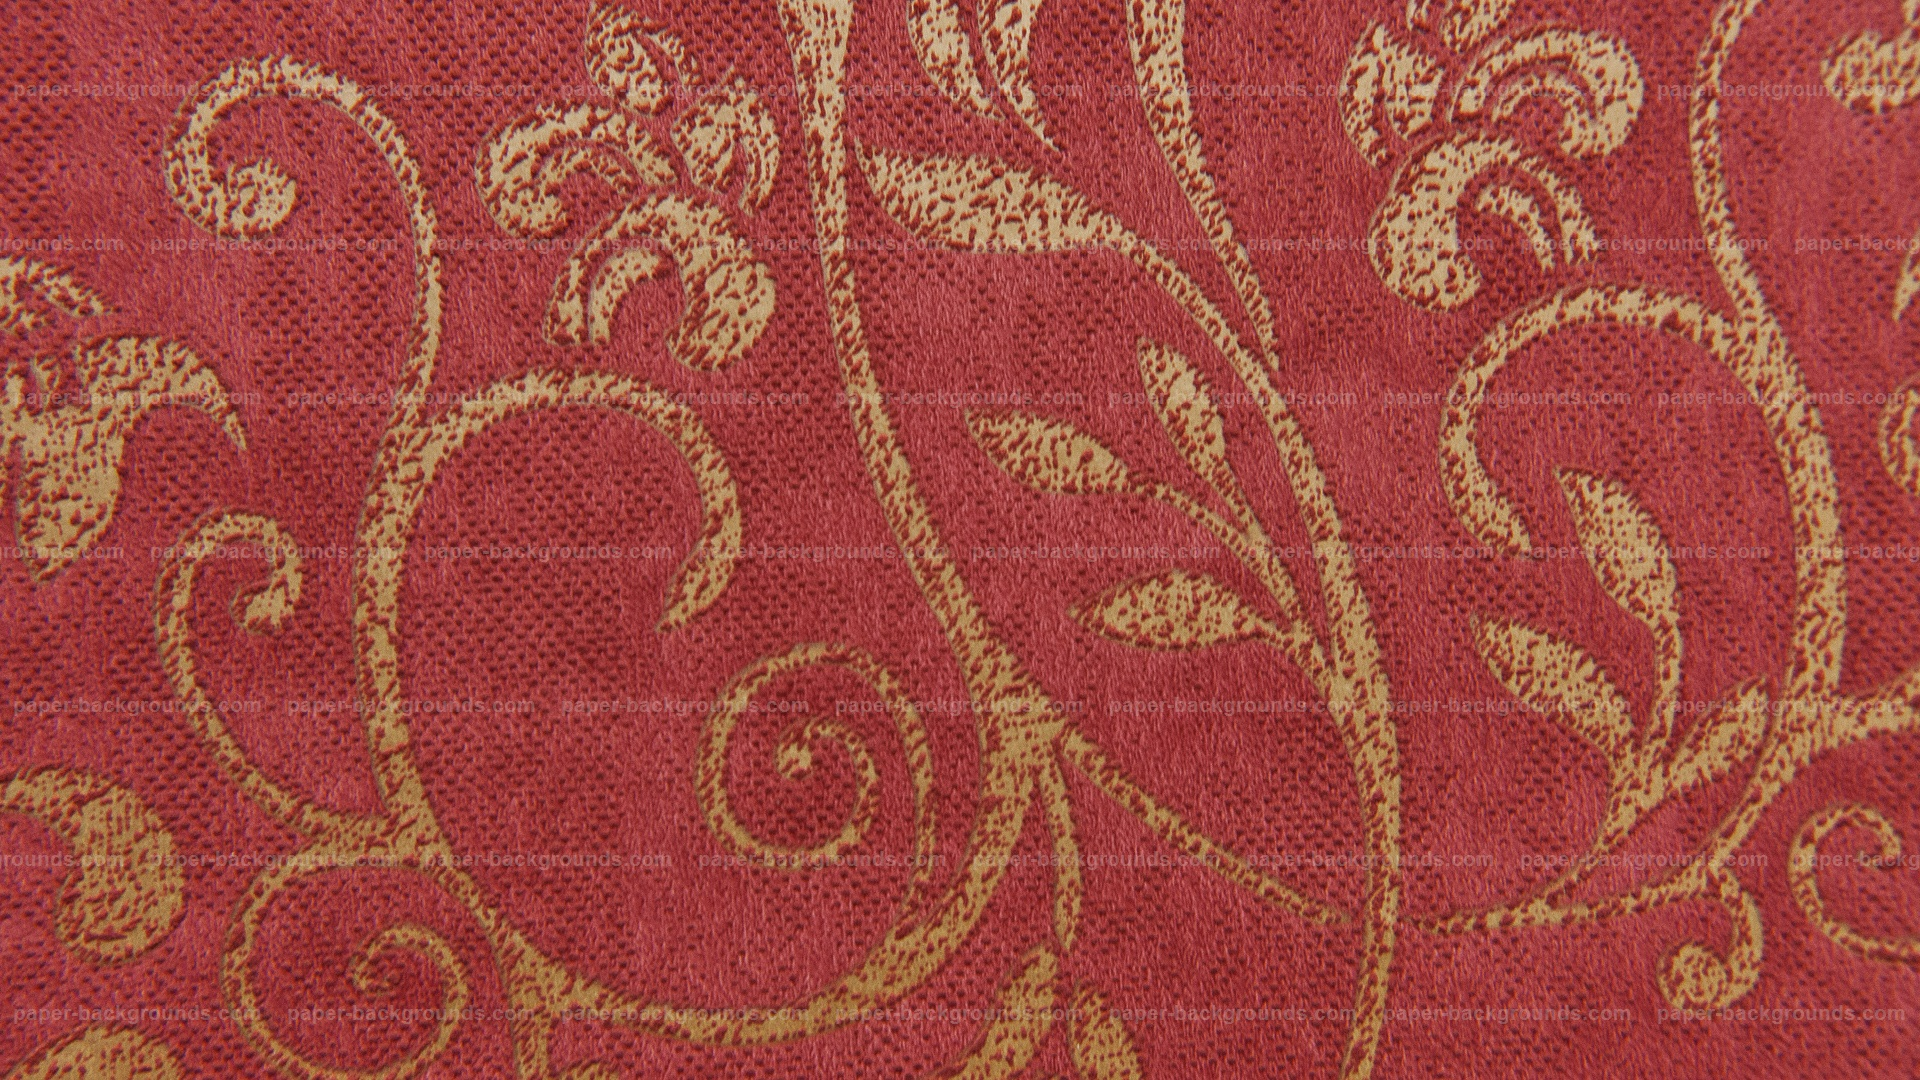 Paper Backgrounds Free Wallpapers Royalty Free Hd - red carpet wall design